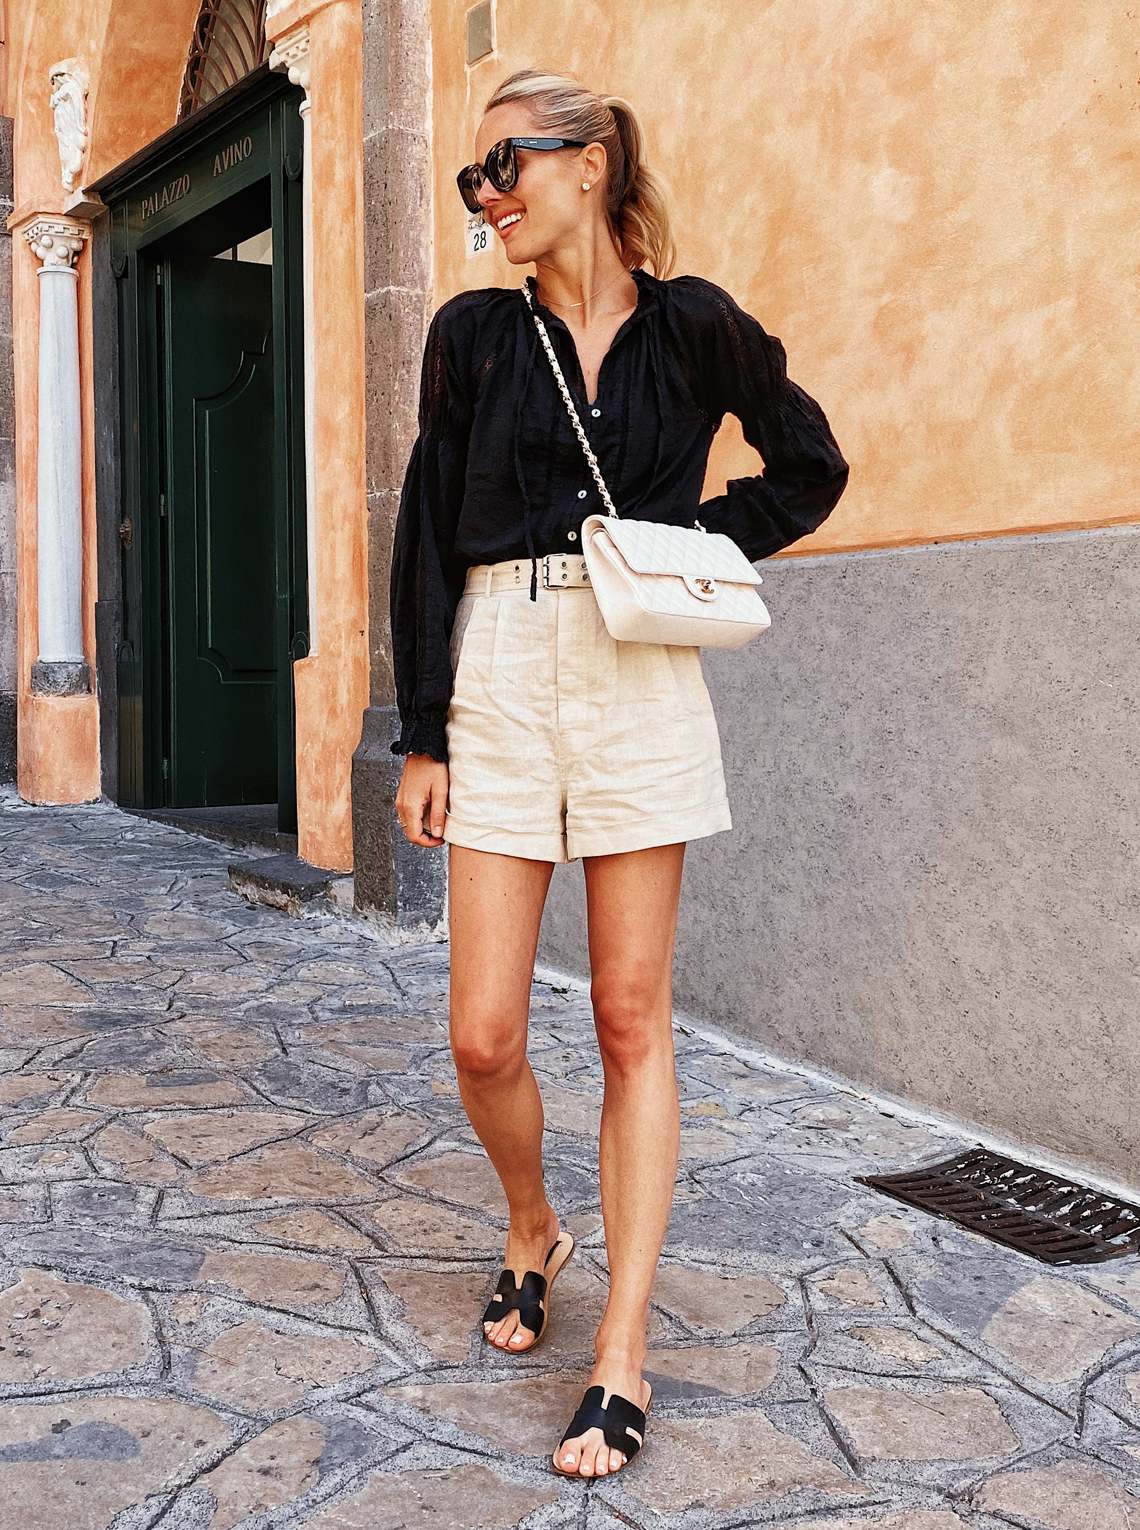 Fashin Jackson Wearing Black Peasant Blouse Khaki Shorts Black Sandals White Chanel Handbag Italy Summer Outfit